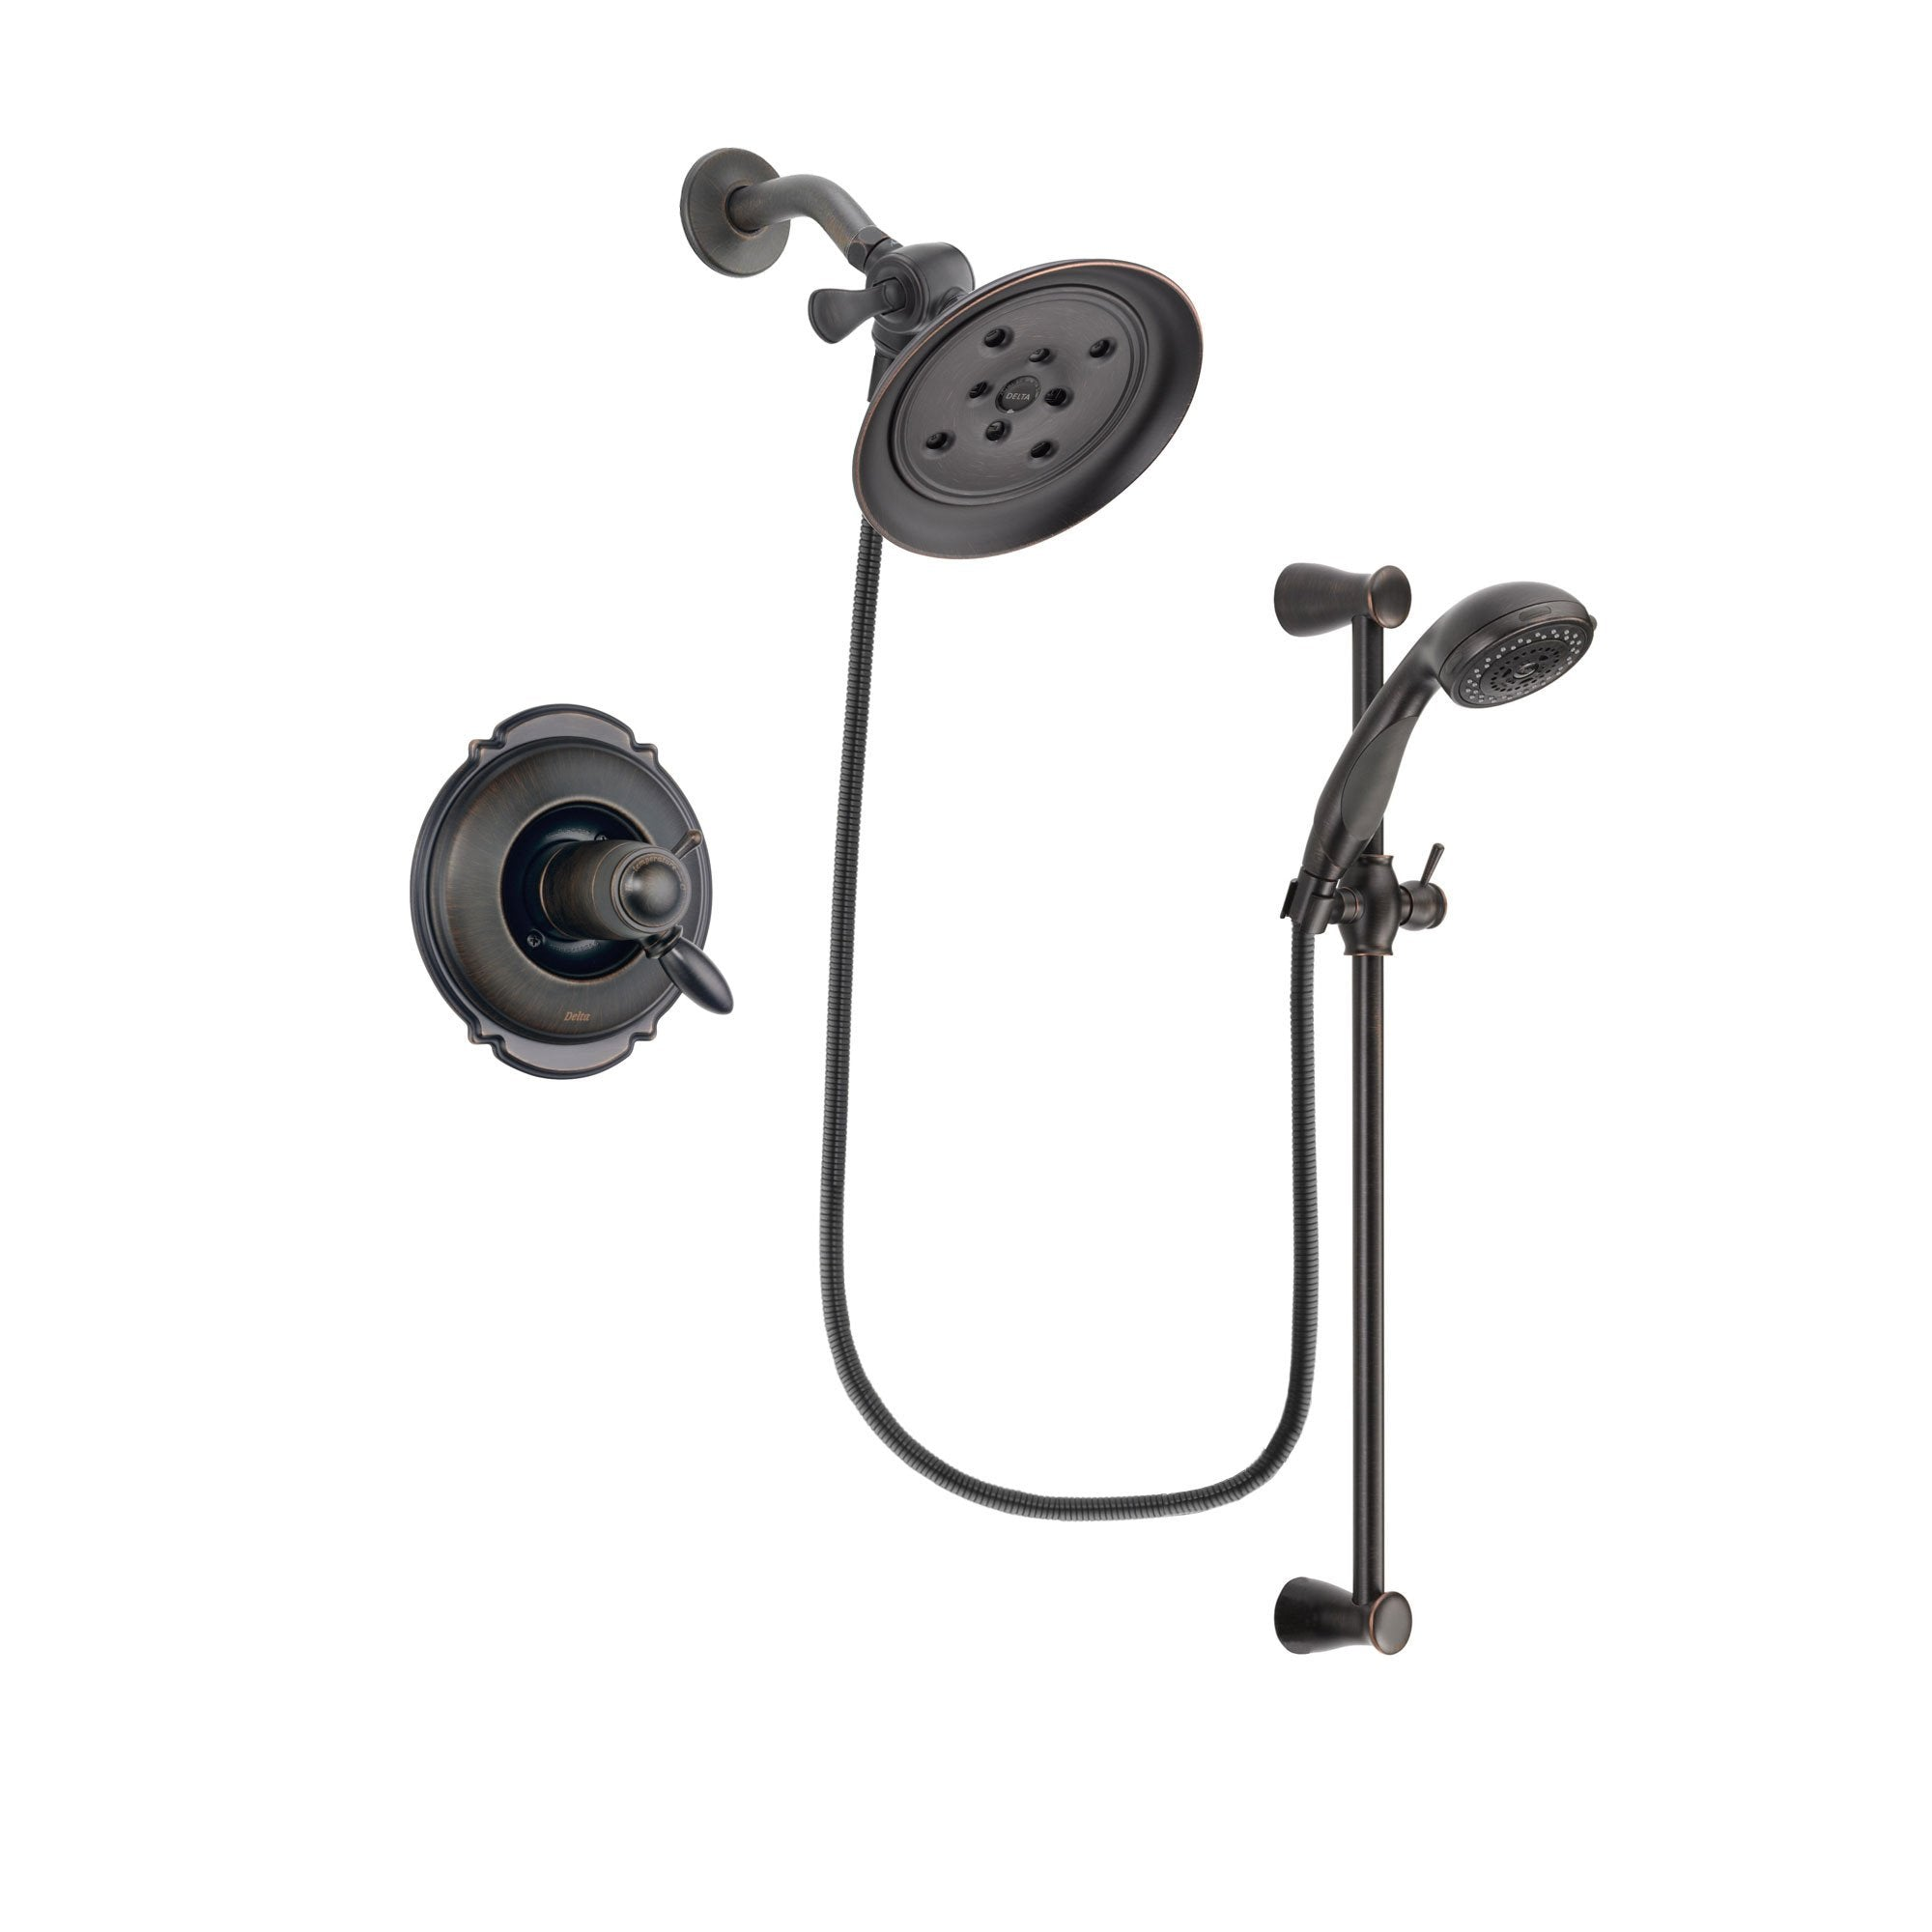 Delta Victorian Venetian Bronze Shower Faucet System with Hand Shower DSP2684V